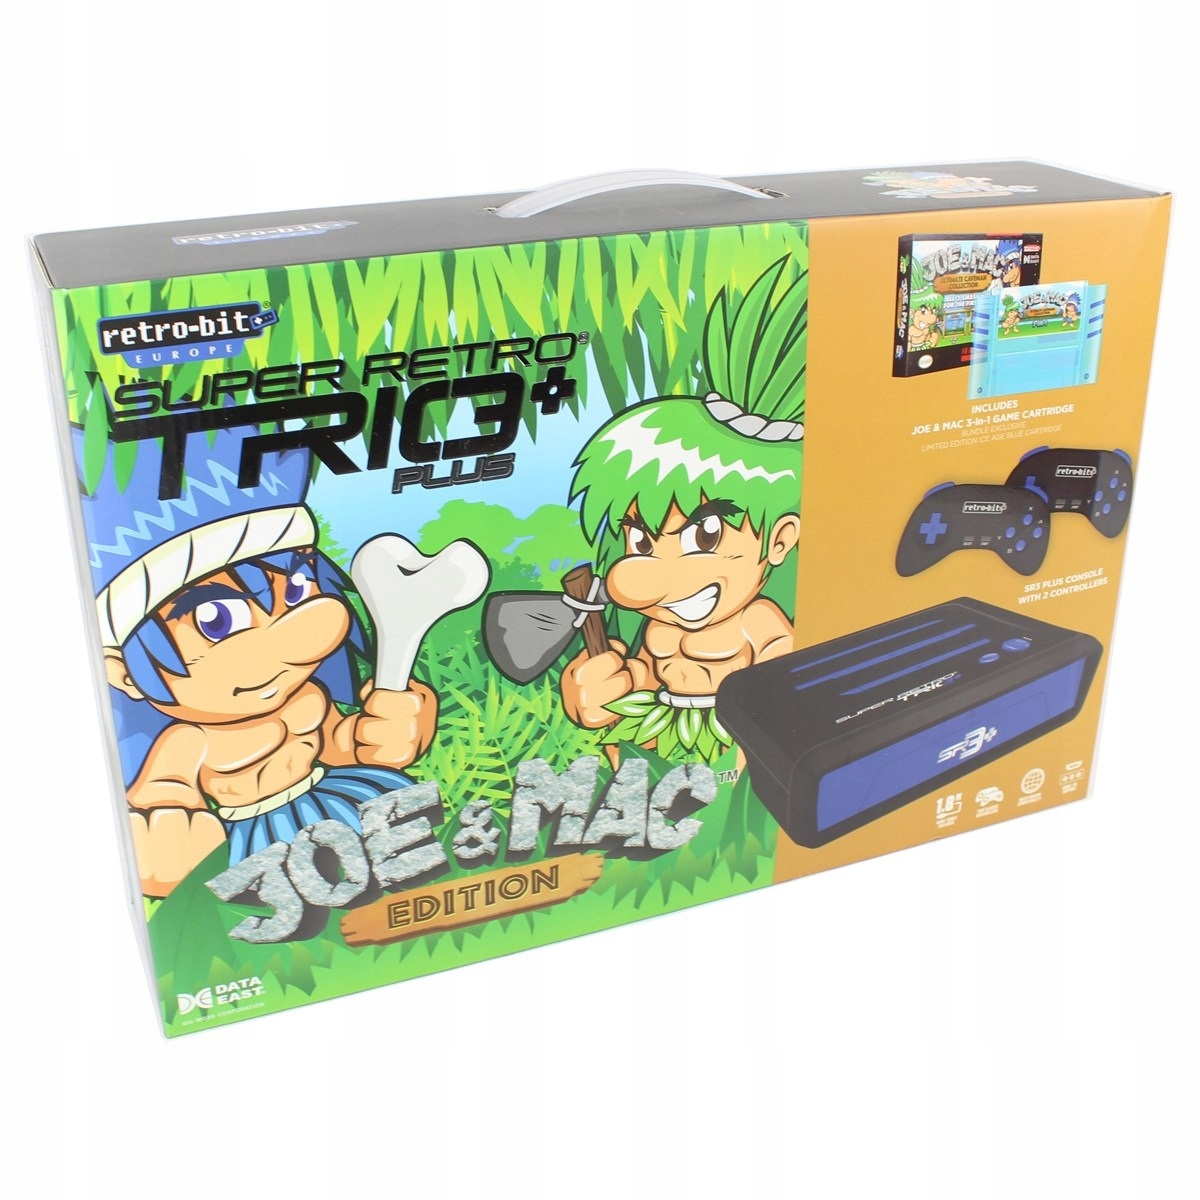 Item Retro-bit Super Retro Trio+ HD Joe&Mac Set